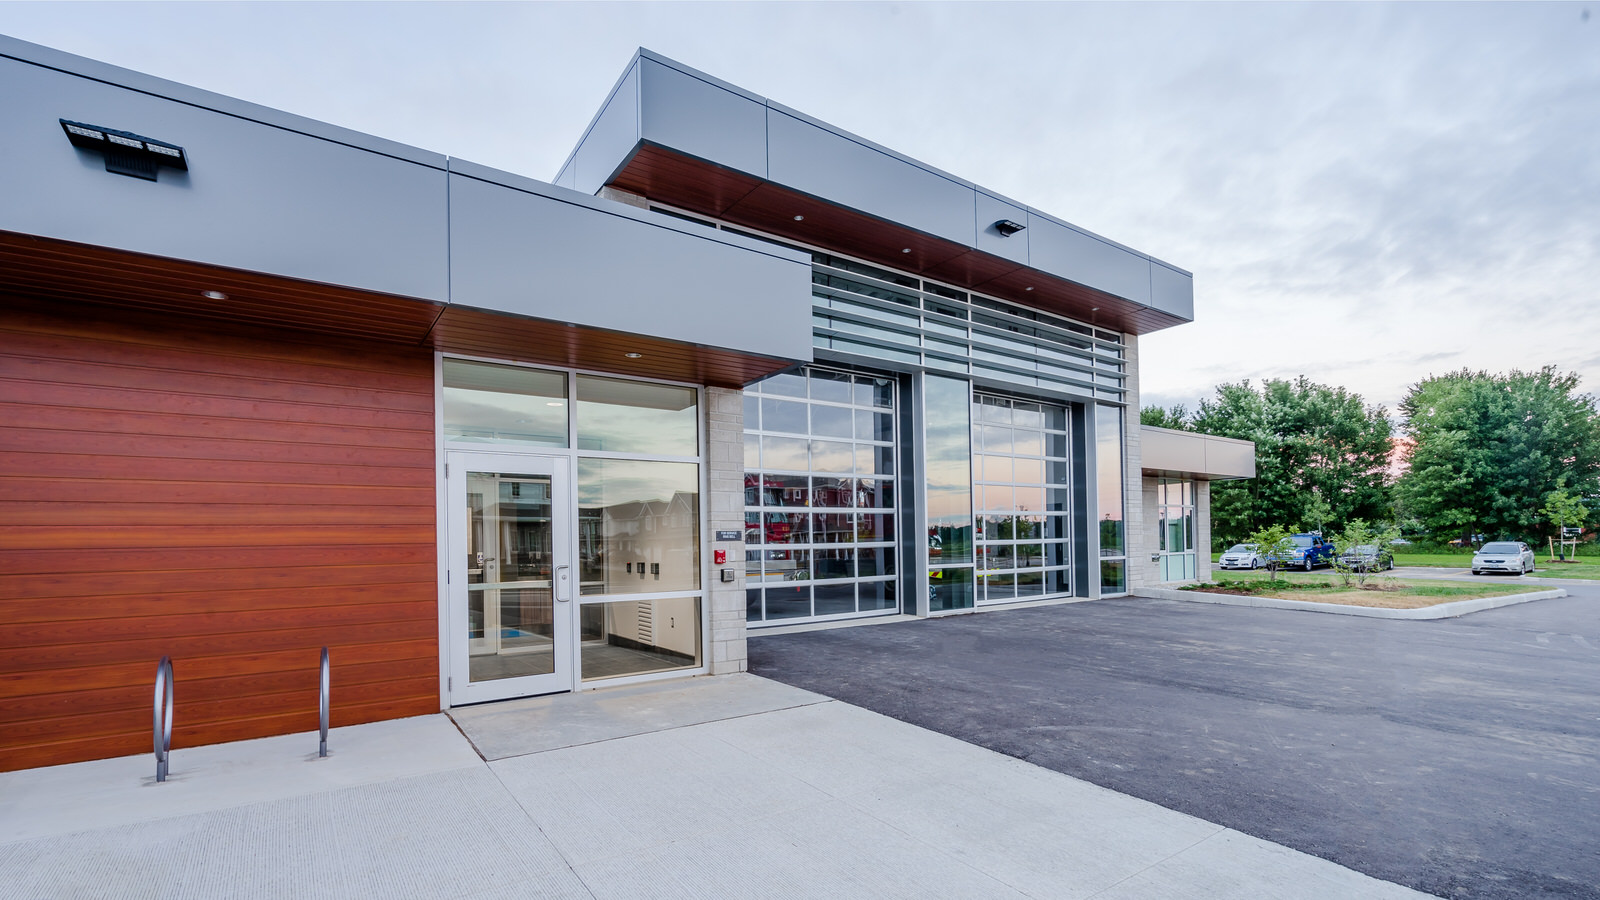 New No. 11 Fire Station in London Ontario Design by Ryan Ollson of Cornerstone Architecture